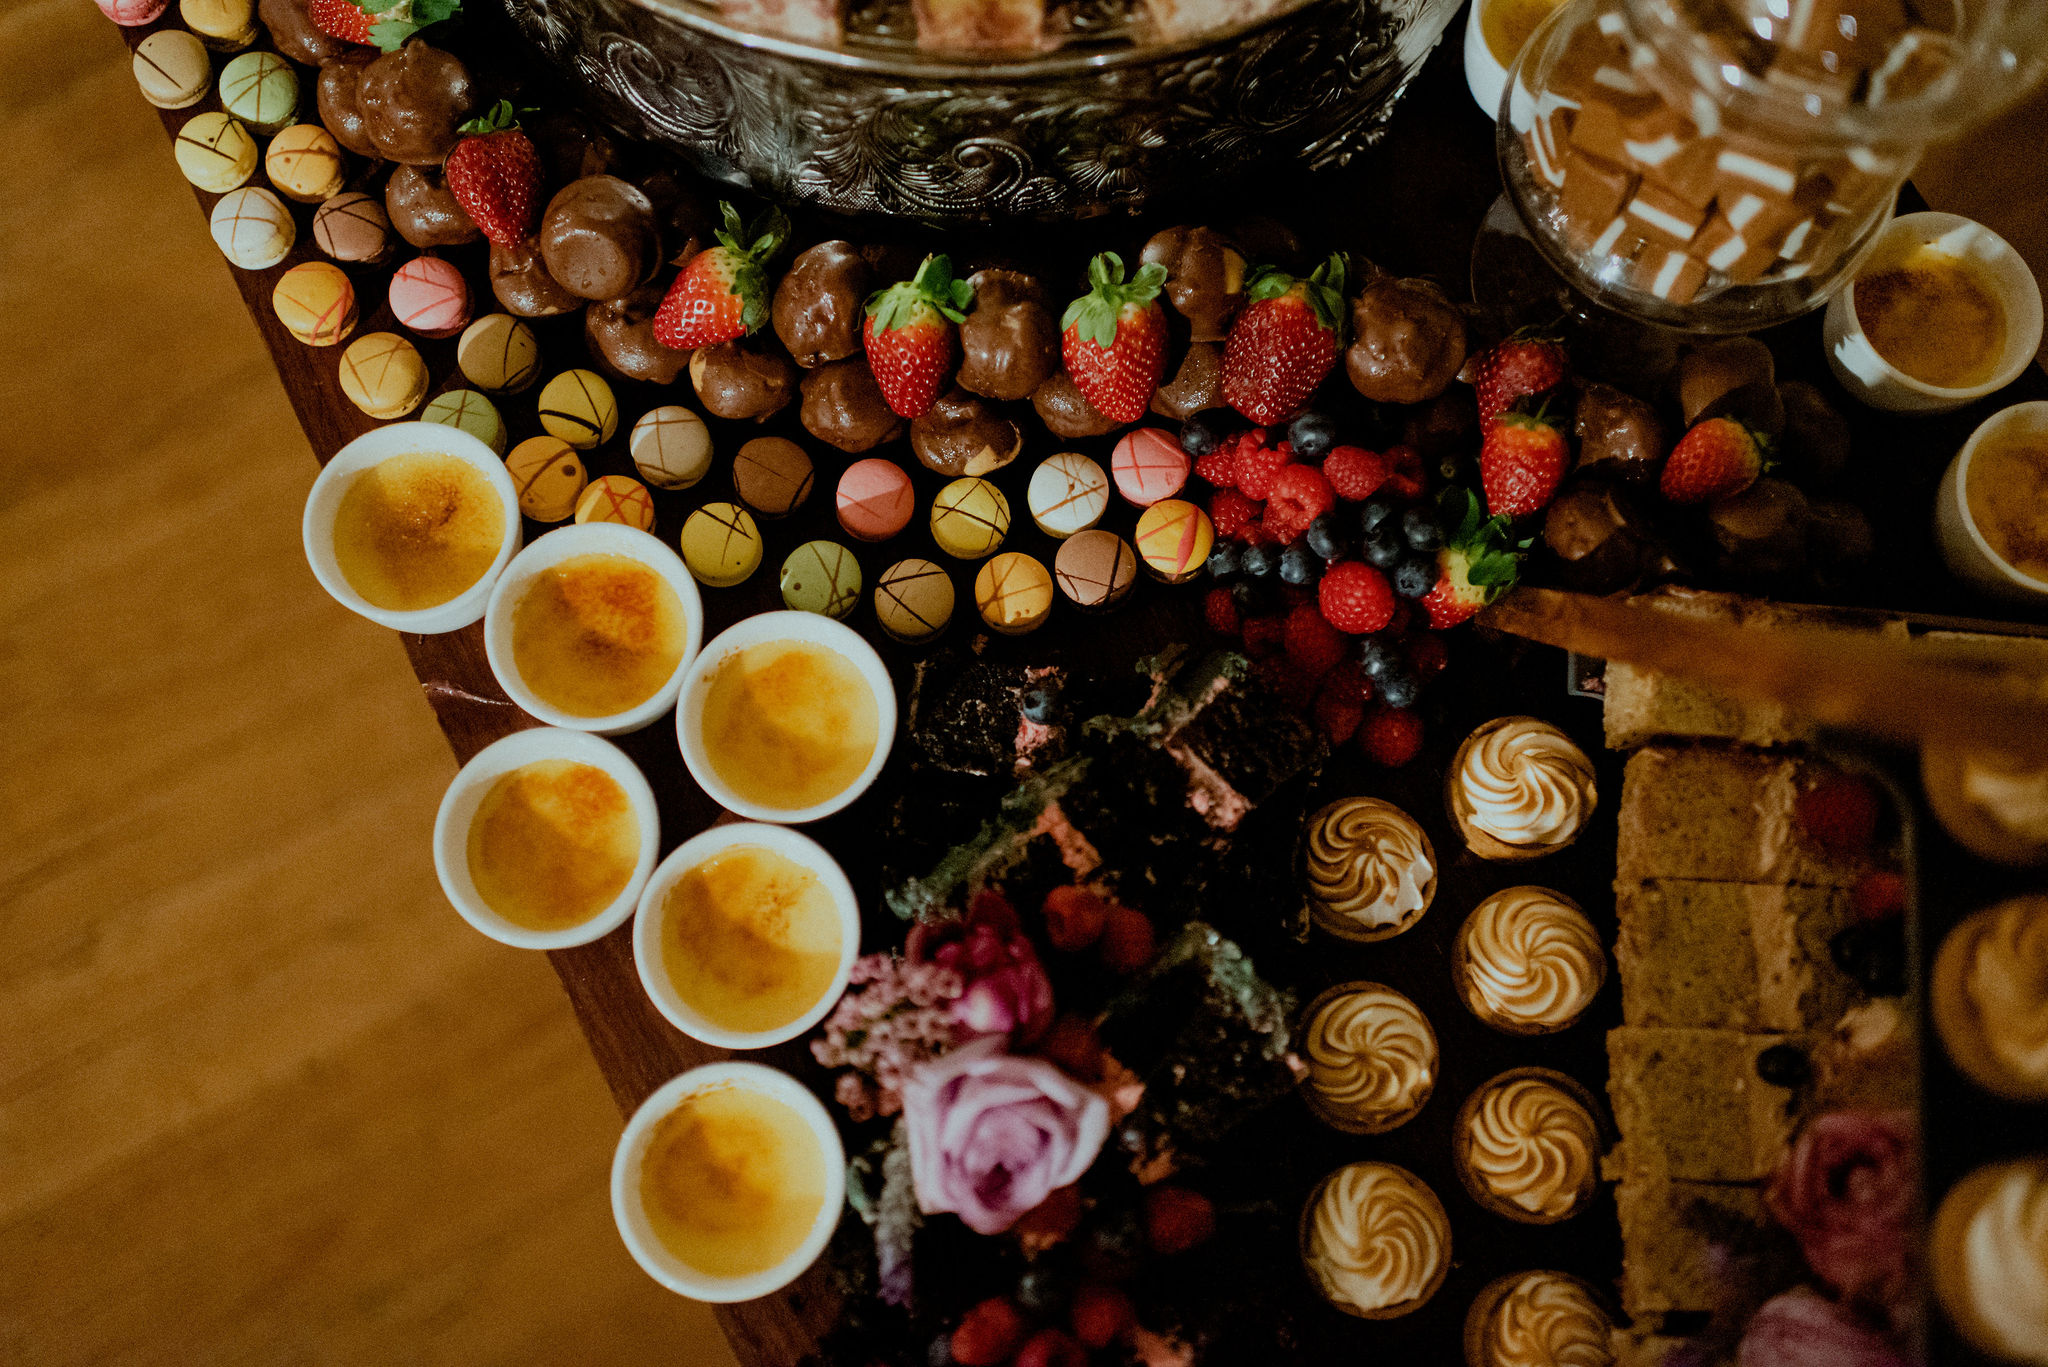 Birds-eye-view of a table with many different desserts